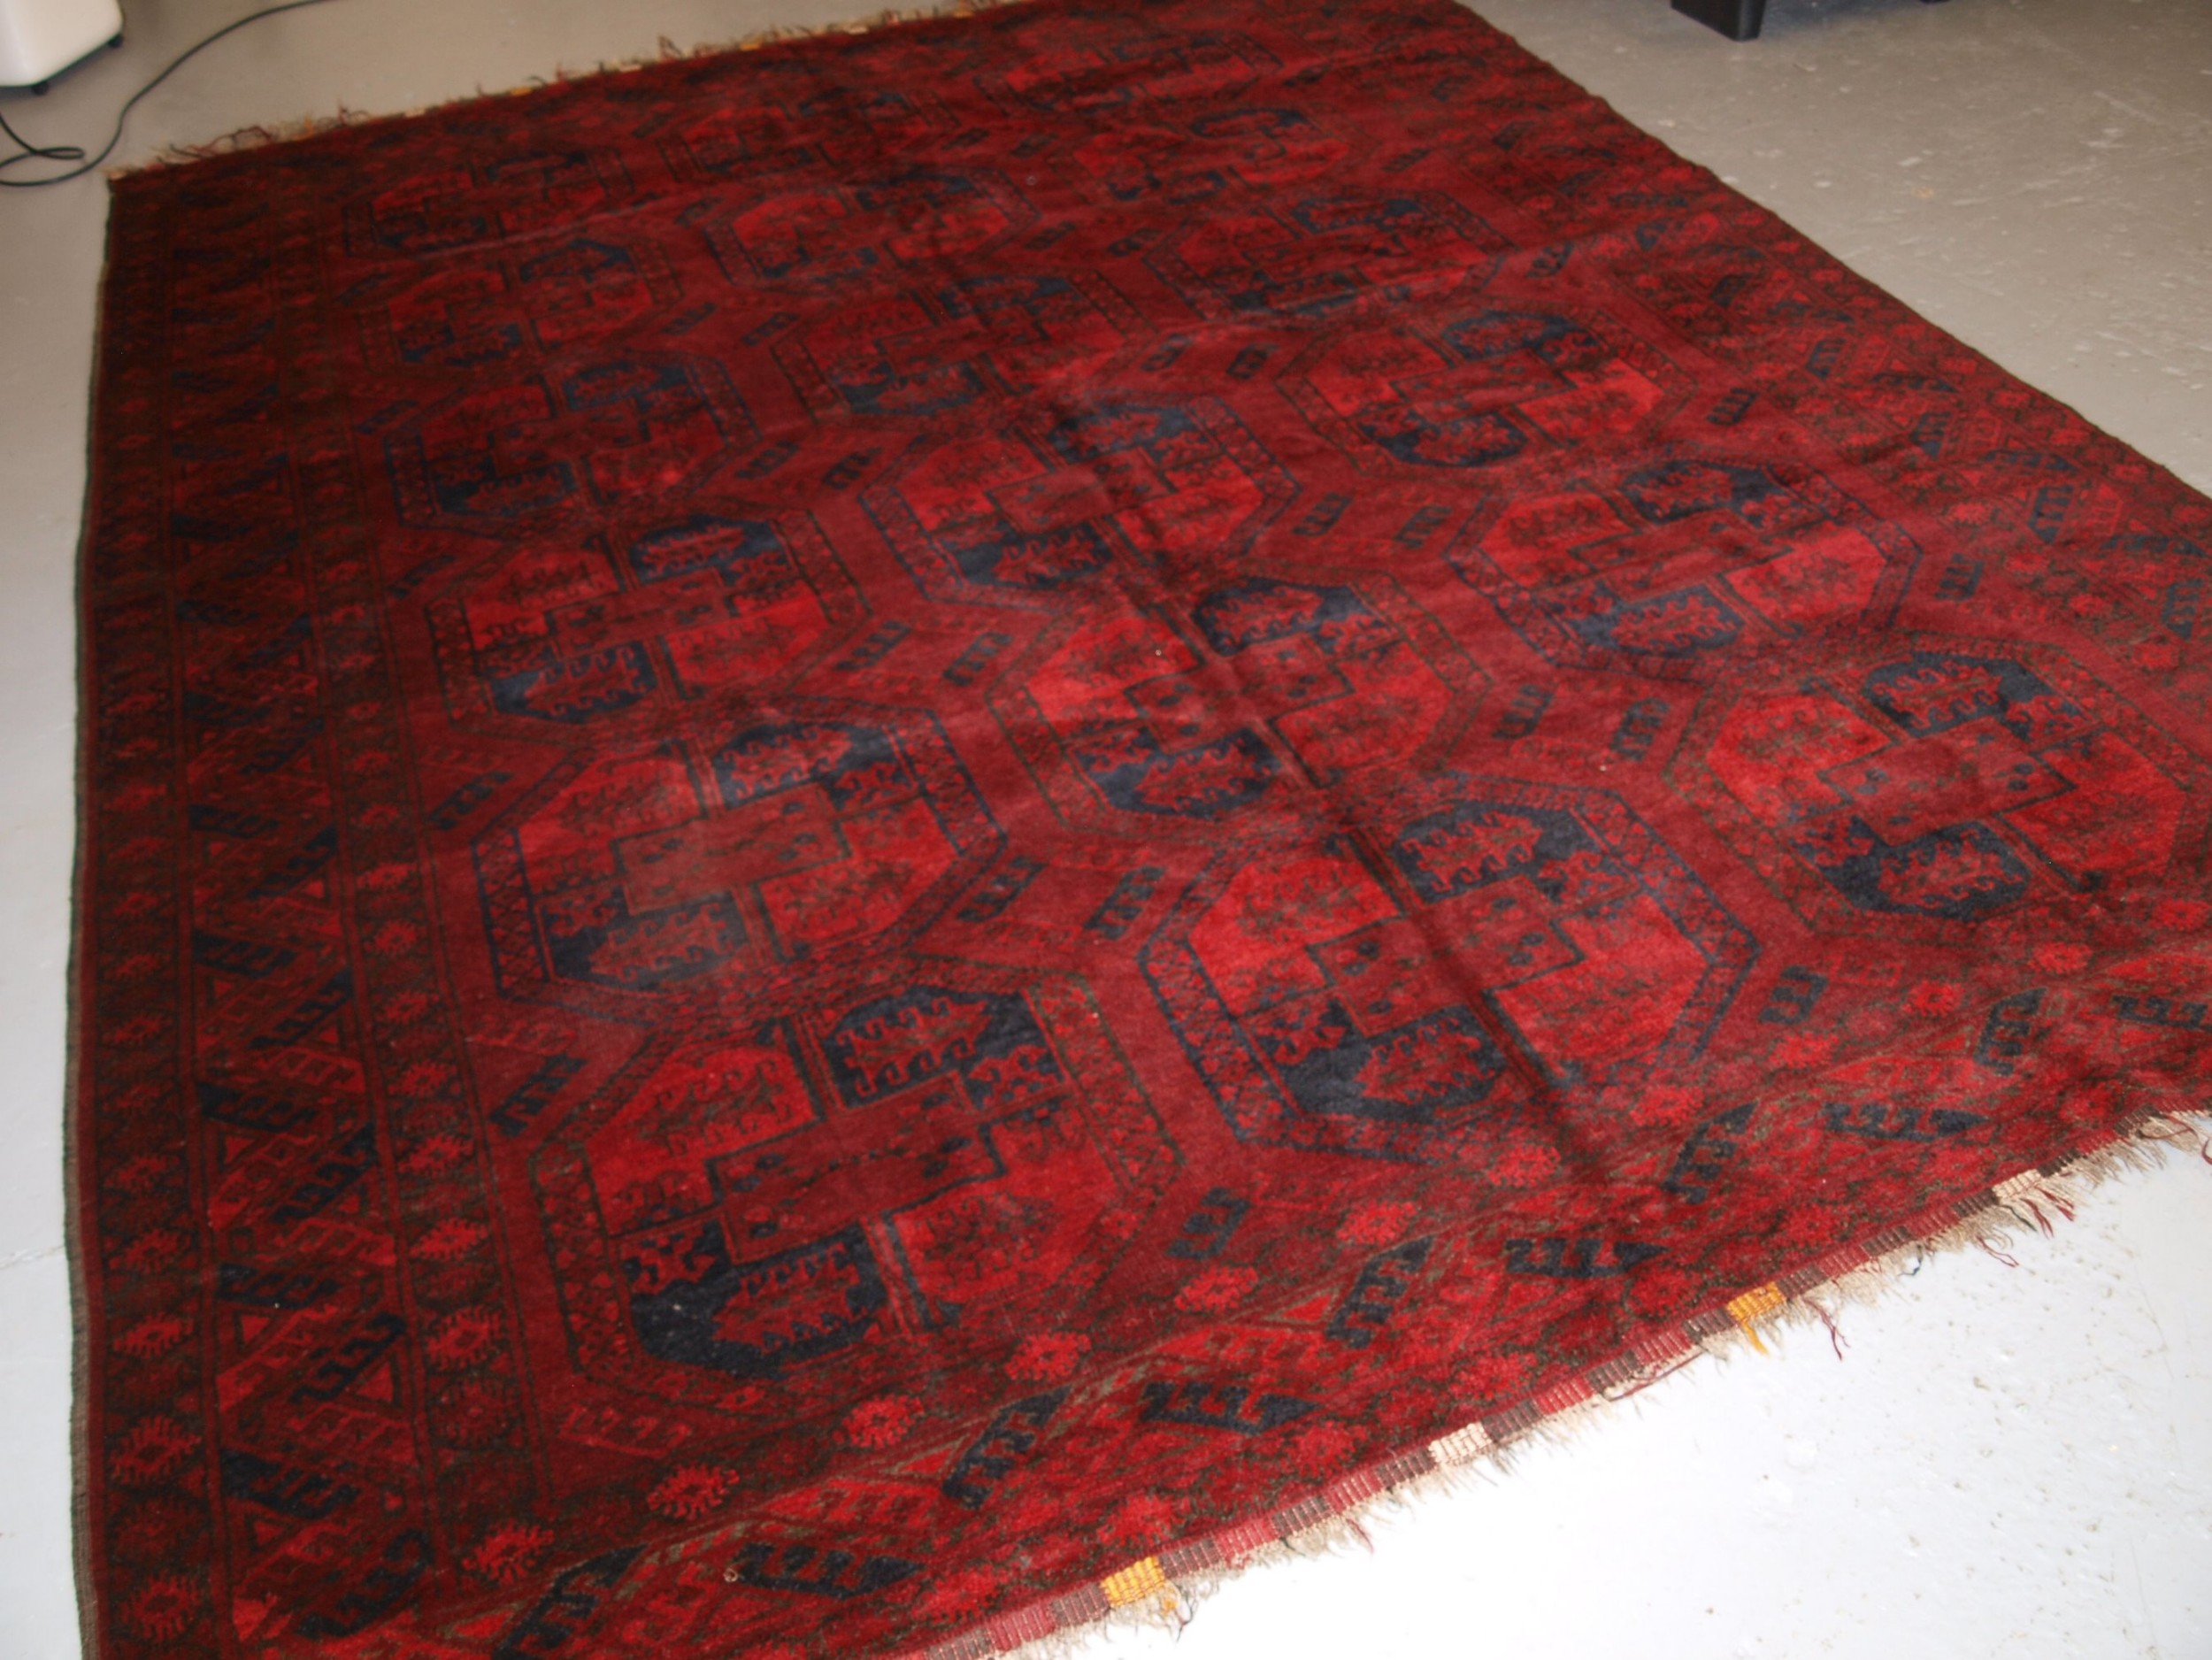 old afghan village carpet very deep red colour traditional design circa 1920